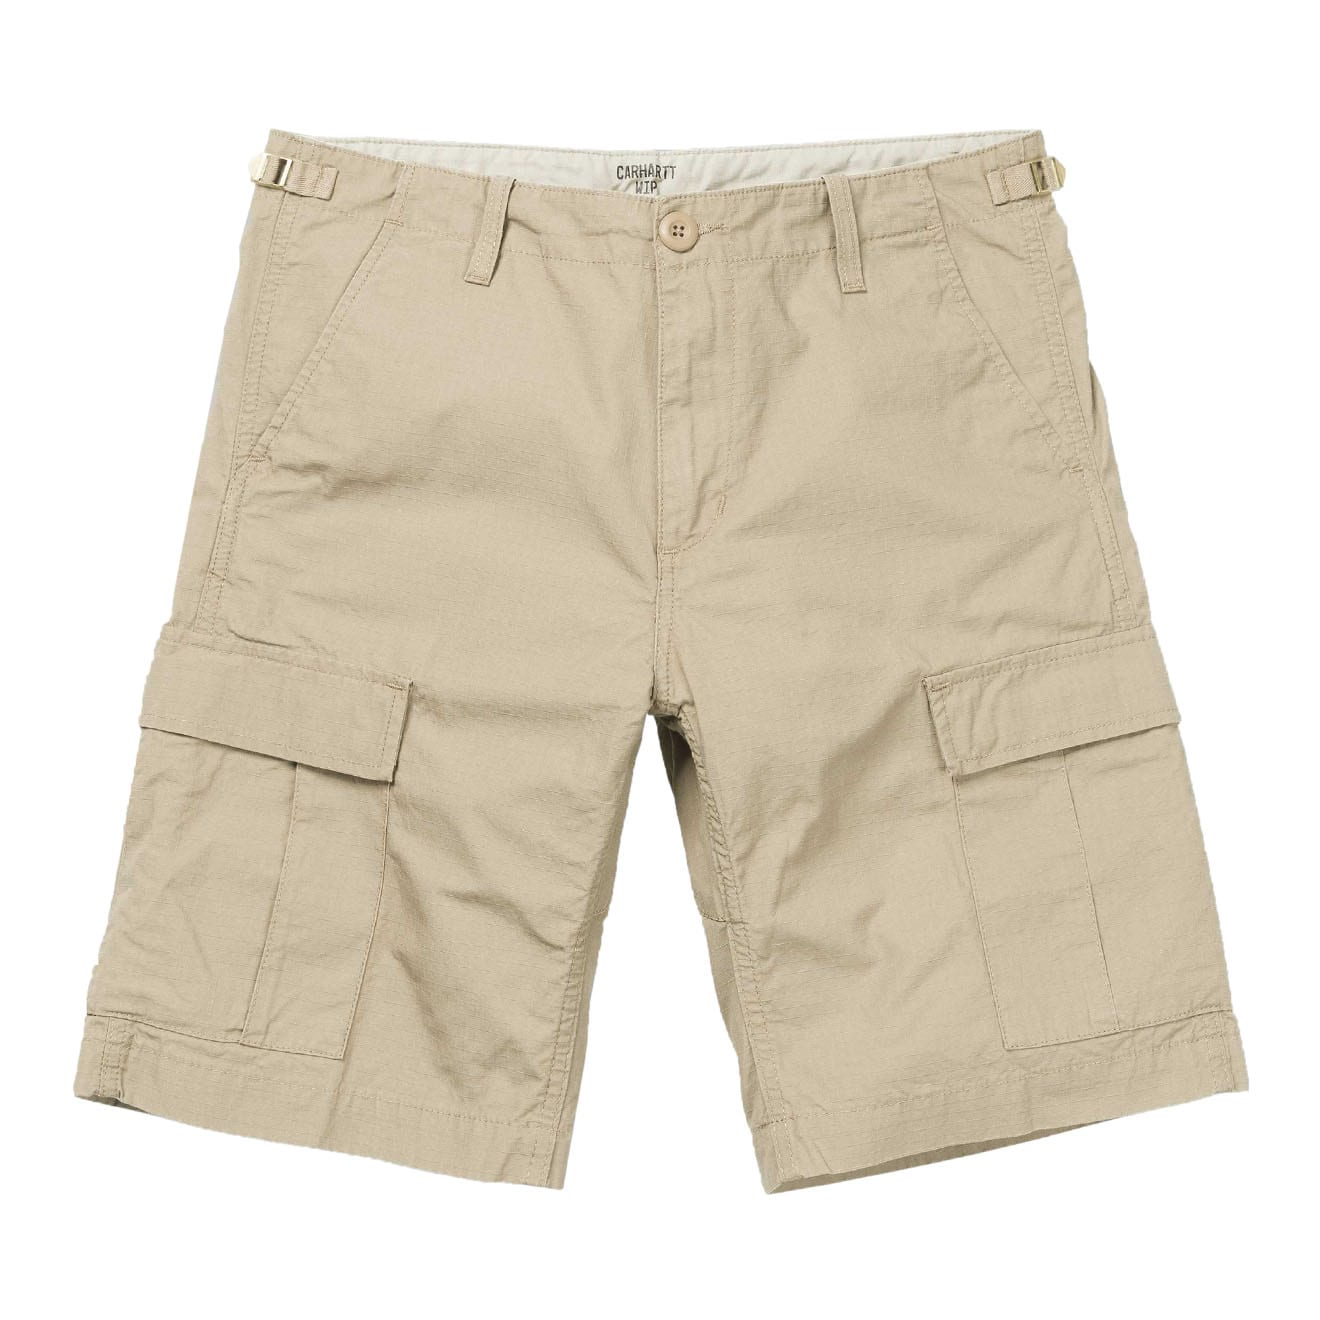 Carhartt Aviation Shorts 100% Cotton